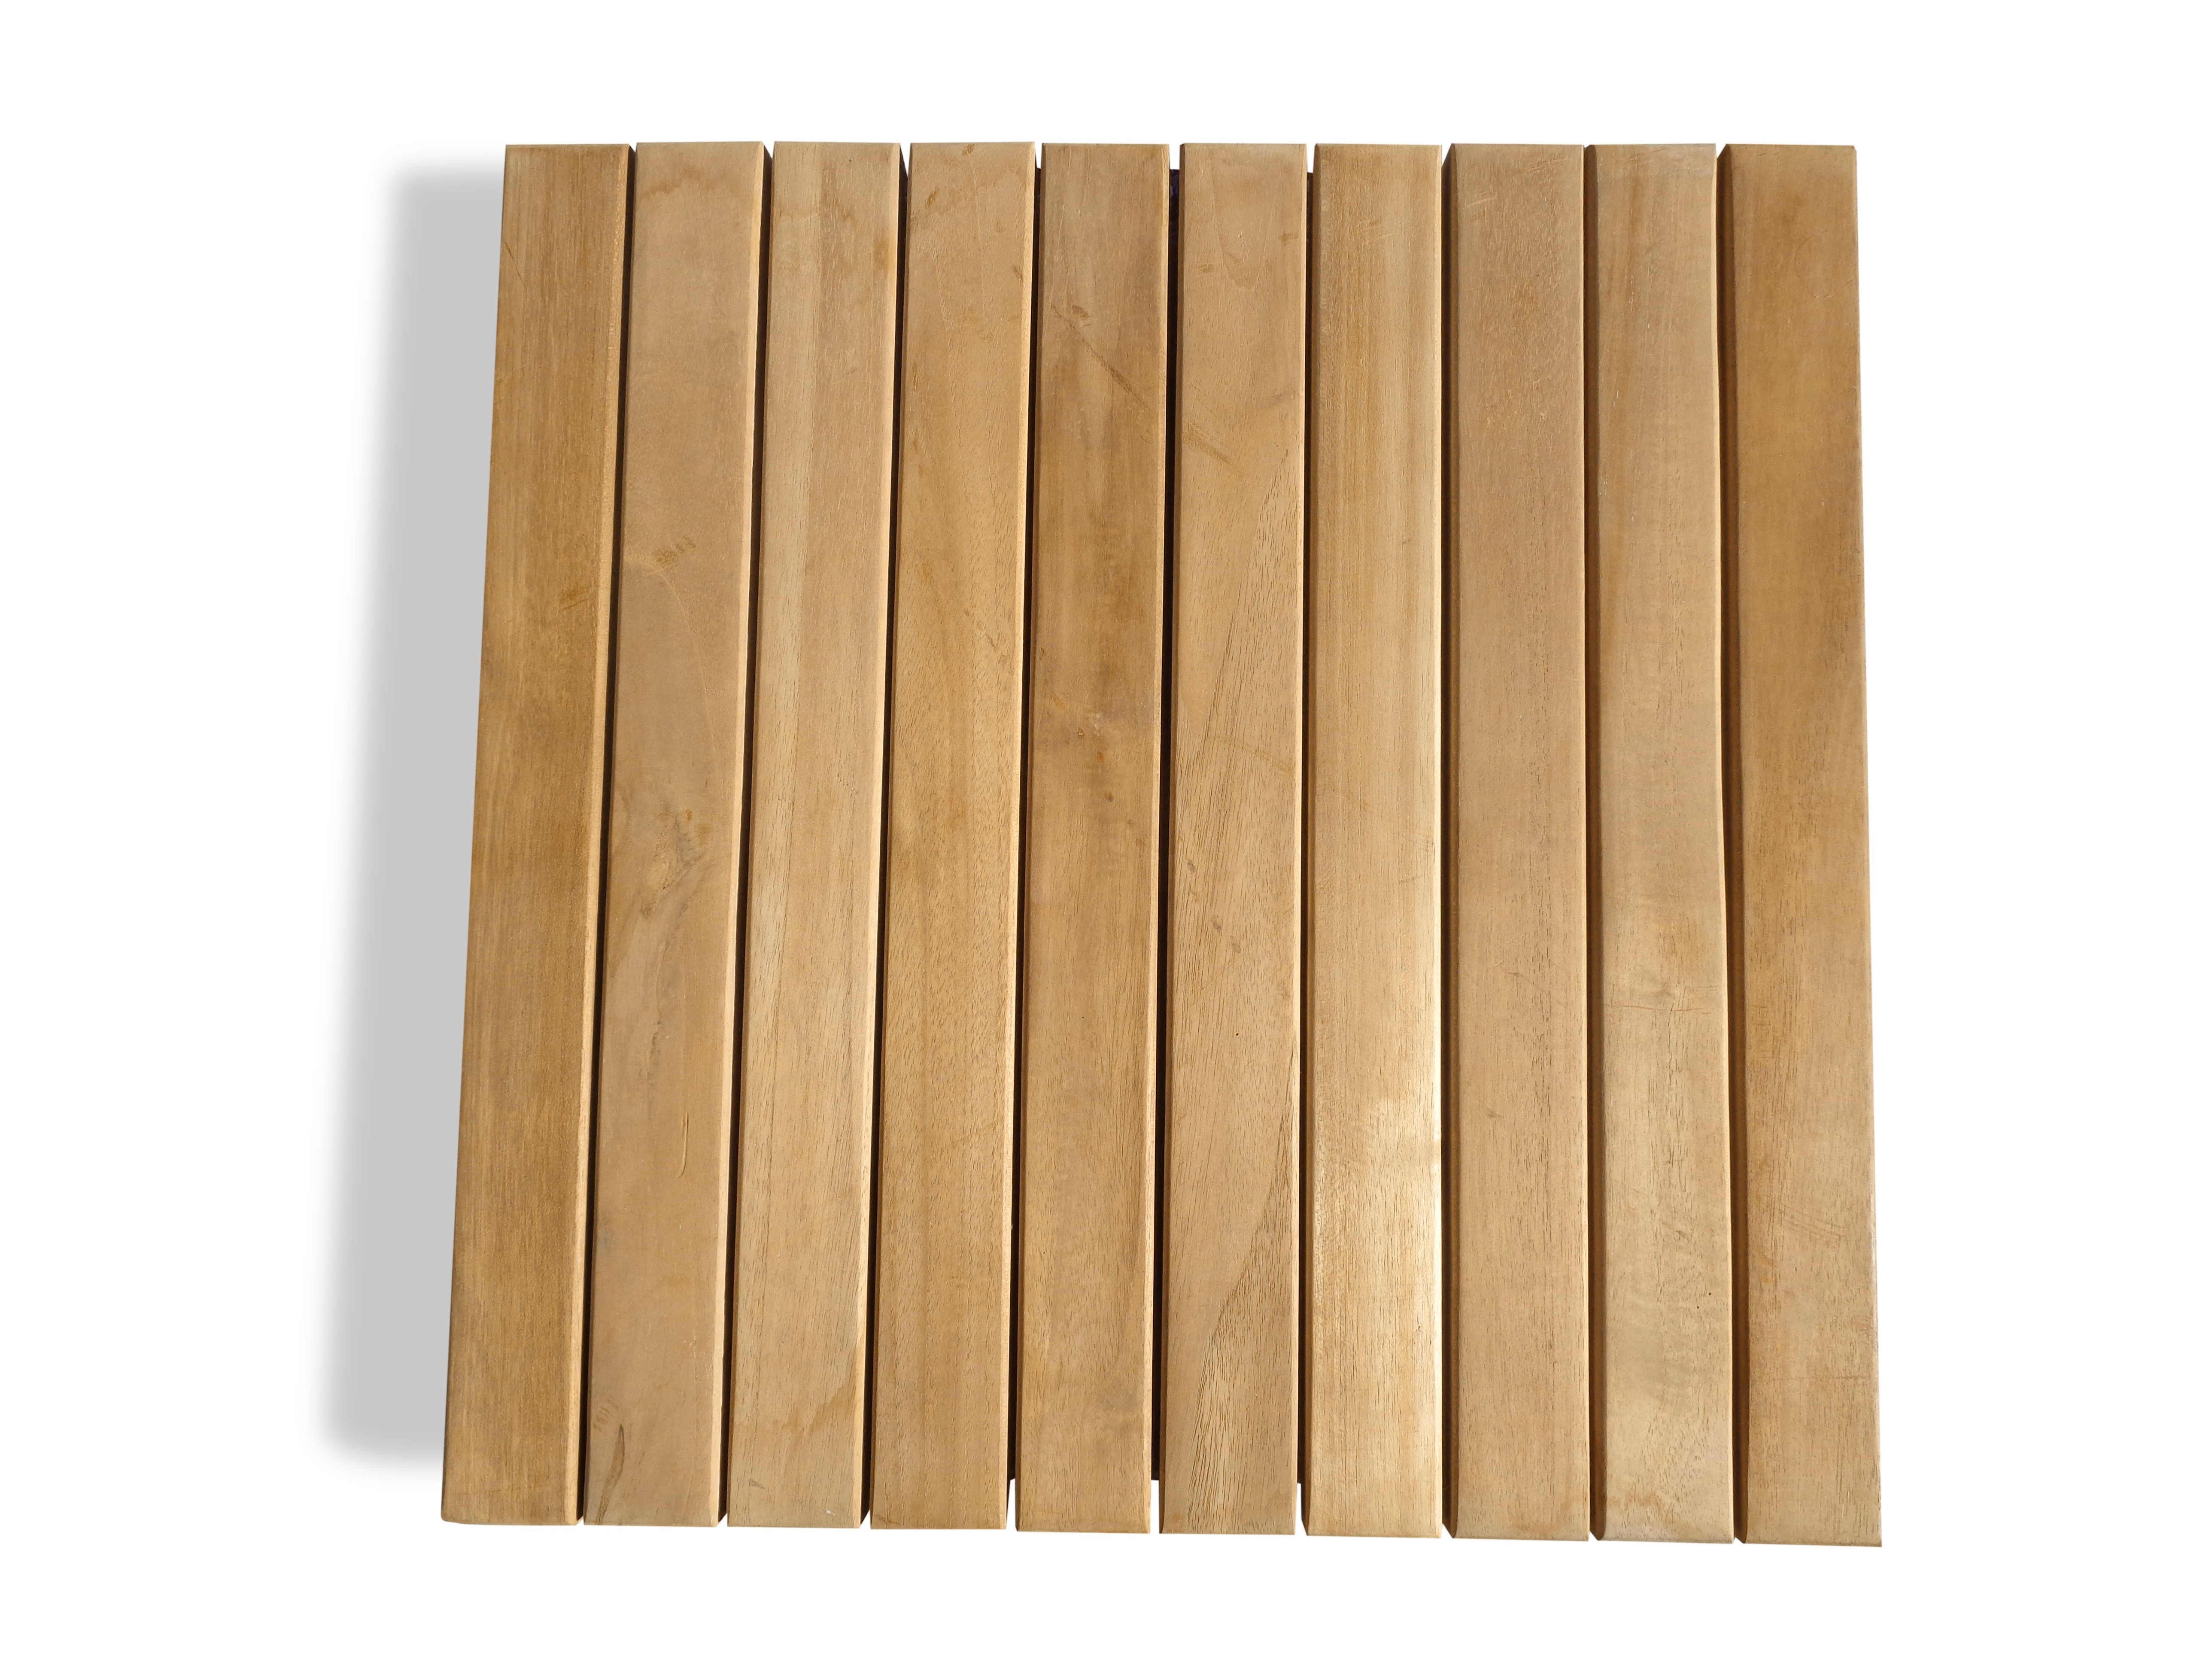 "Pack of 5 Teak Floor Tiles Indoor/Outdoors.. 19.75"" Square ..11 lbs ea...Perfect for Decks, Saunas, Showers, Yards, etc"